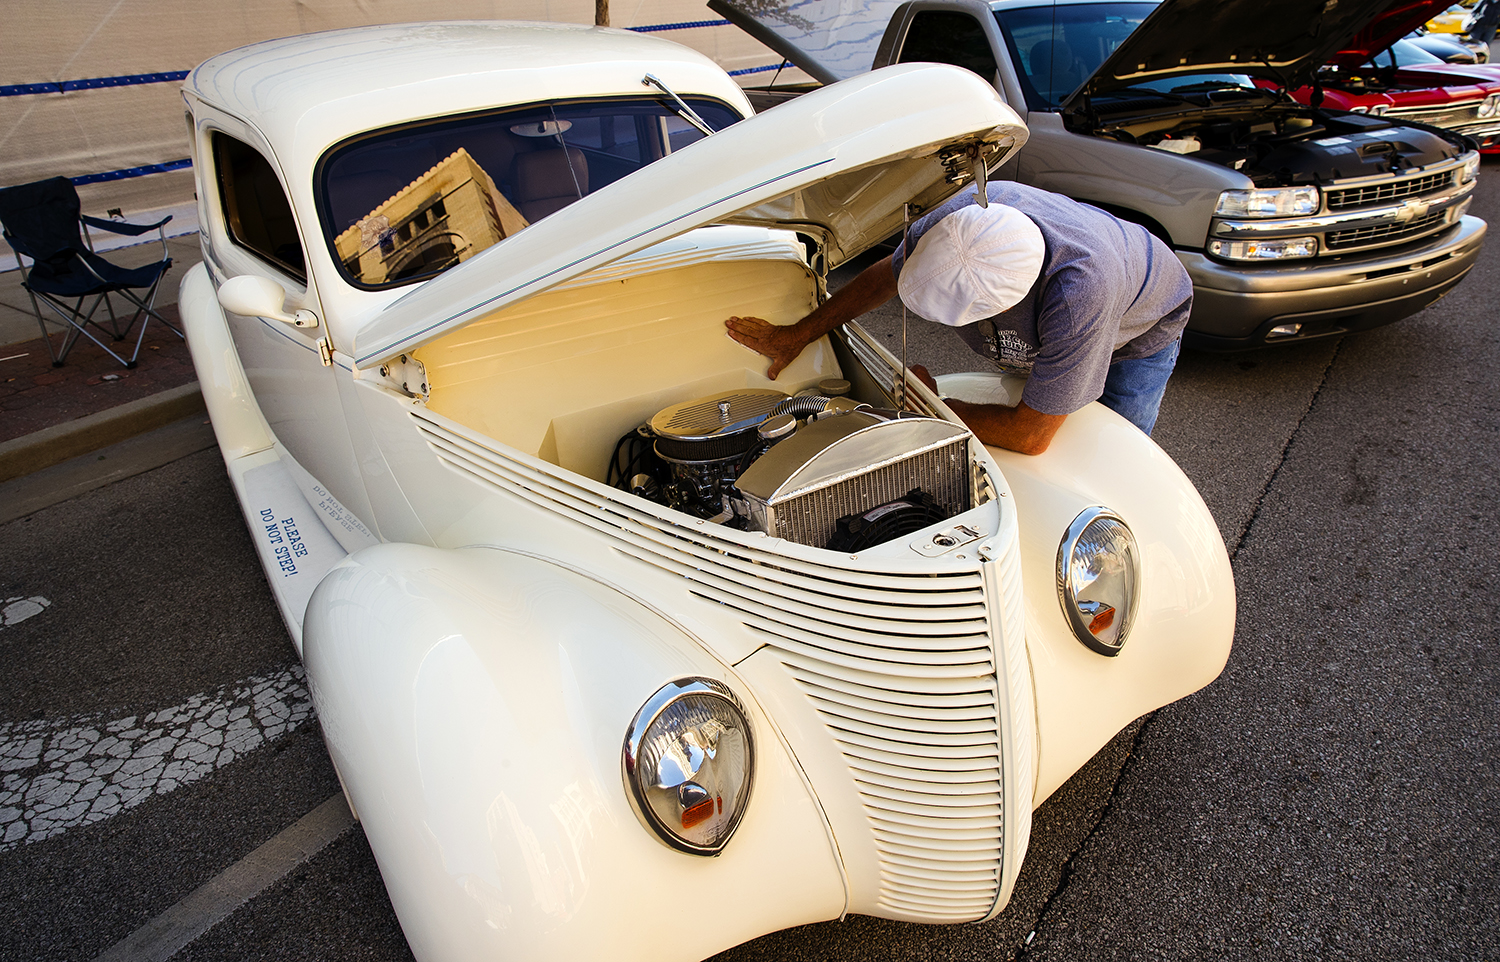 Don Fanning wipes down the engine bay of his 1938 Ford Humpback during the 17th Annual International Route 66 Mother Road Festival Sunday, Sept. 23, 2018. [Ted Schurter/The State Journal-Register]